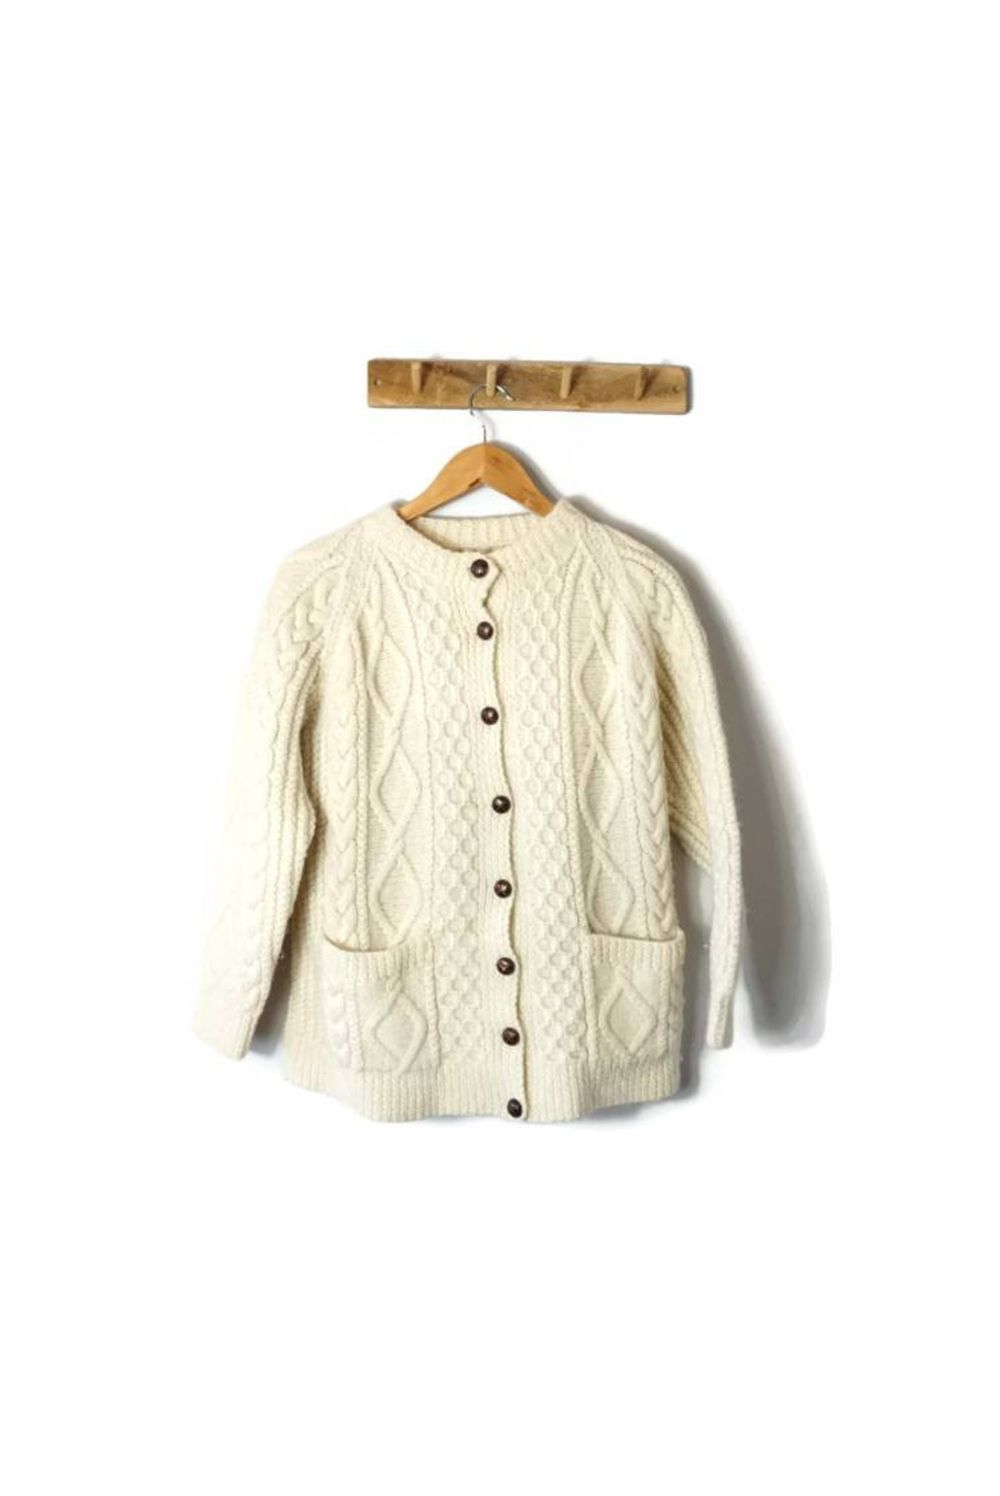 Vintage Aran hand knitted cream cardigan with brown buttons / | Etsy